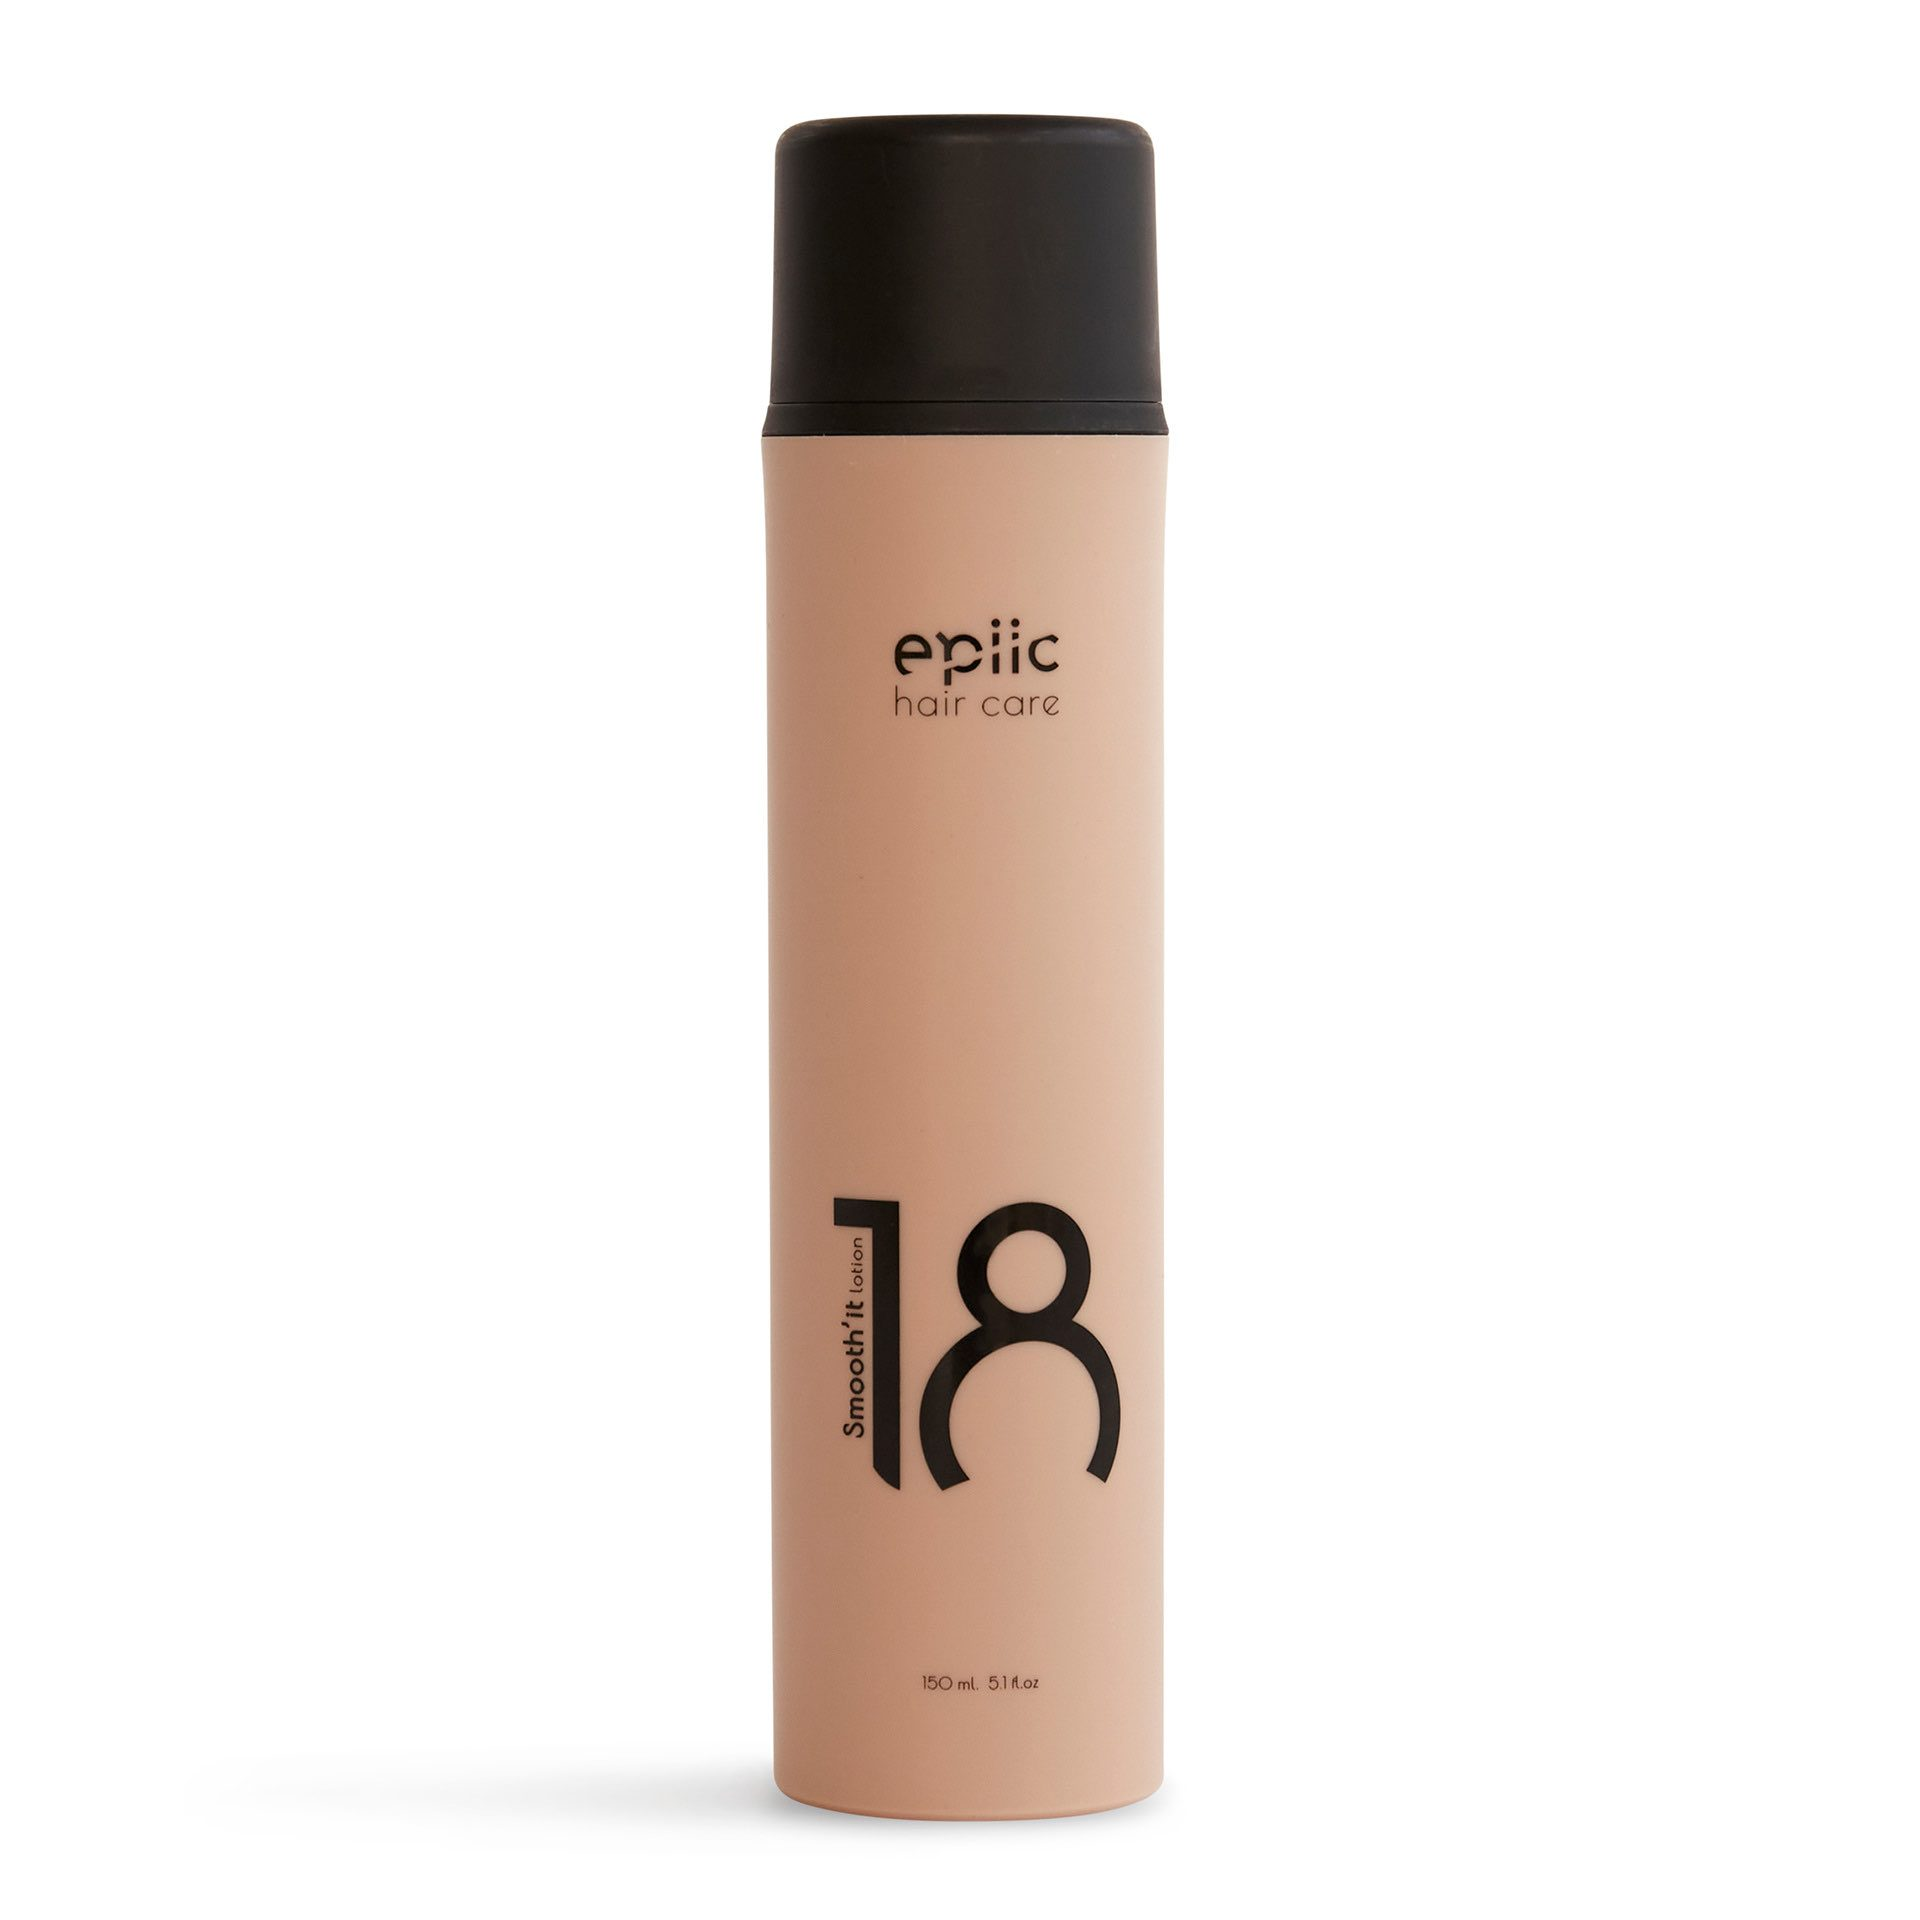 epiic hair care Smooth'it lotion nr. 18 - 150ml